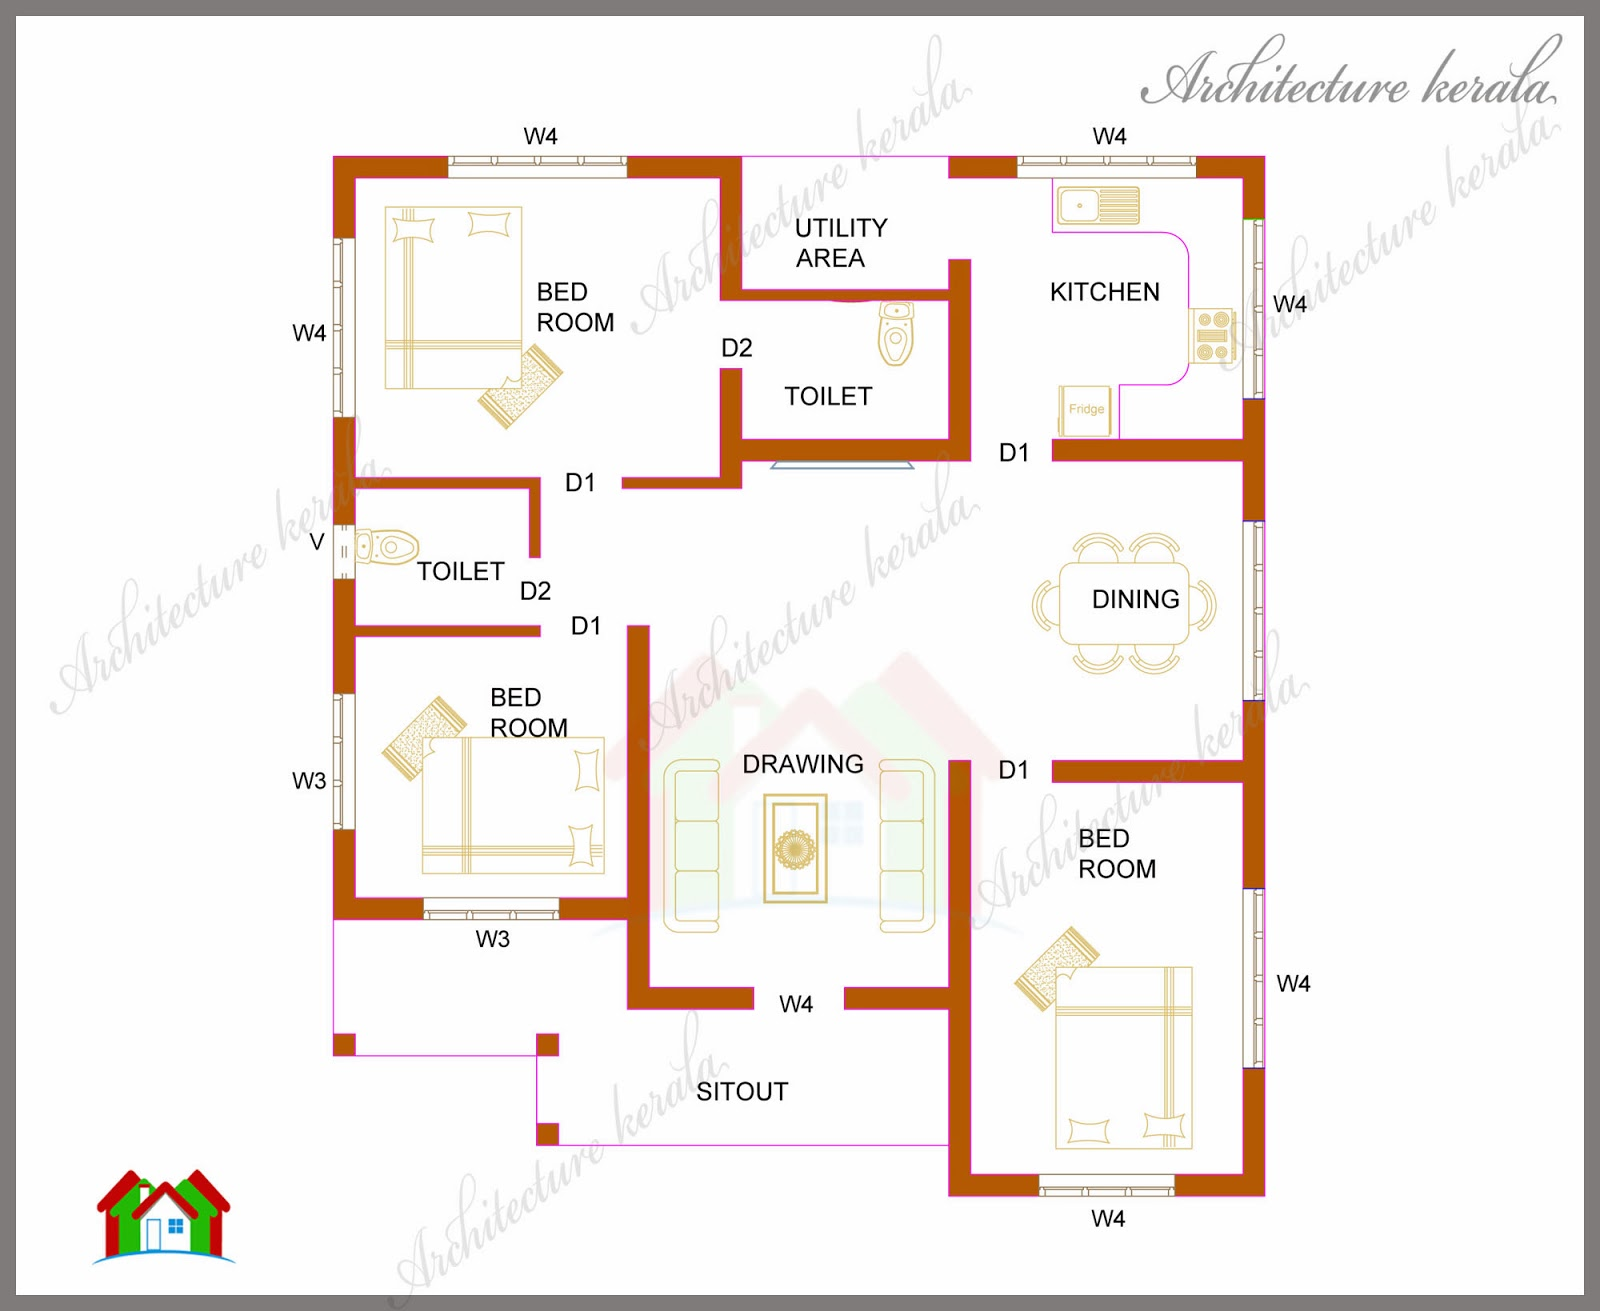 THREE BEDROOMS IN 1200 SQUARE FEET KERALA HOUSE PLAN ARCHITECTURE KERALA